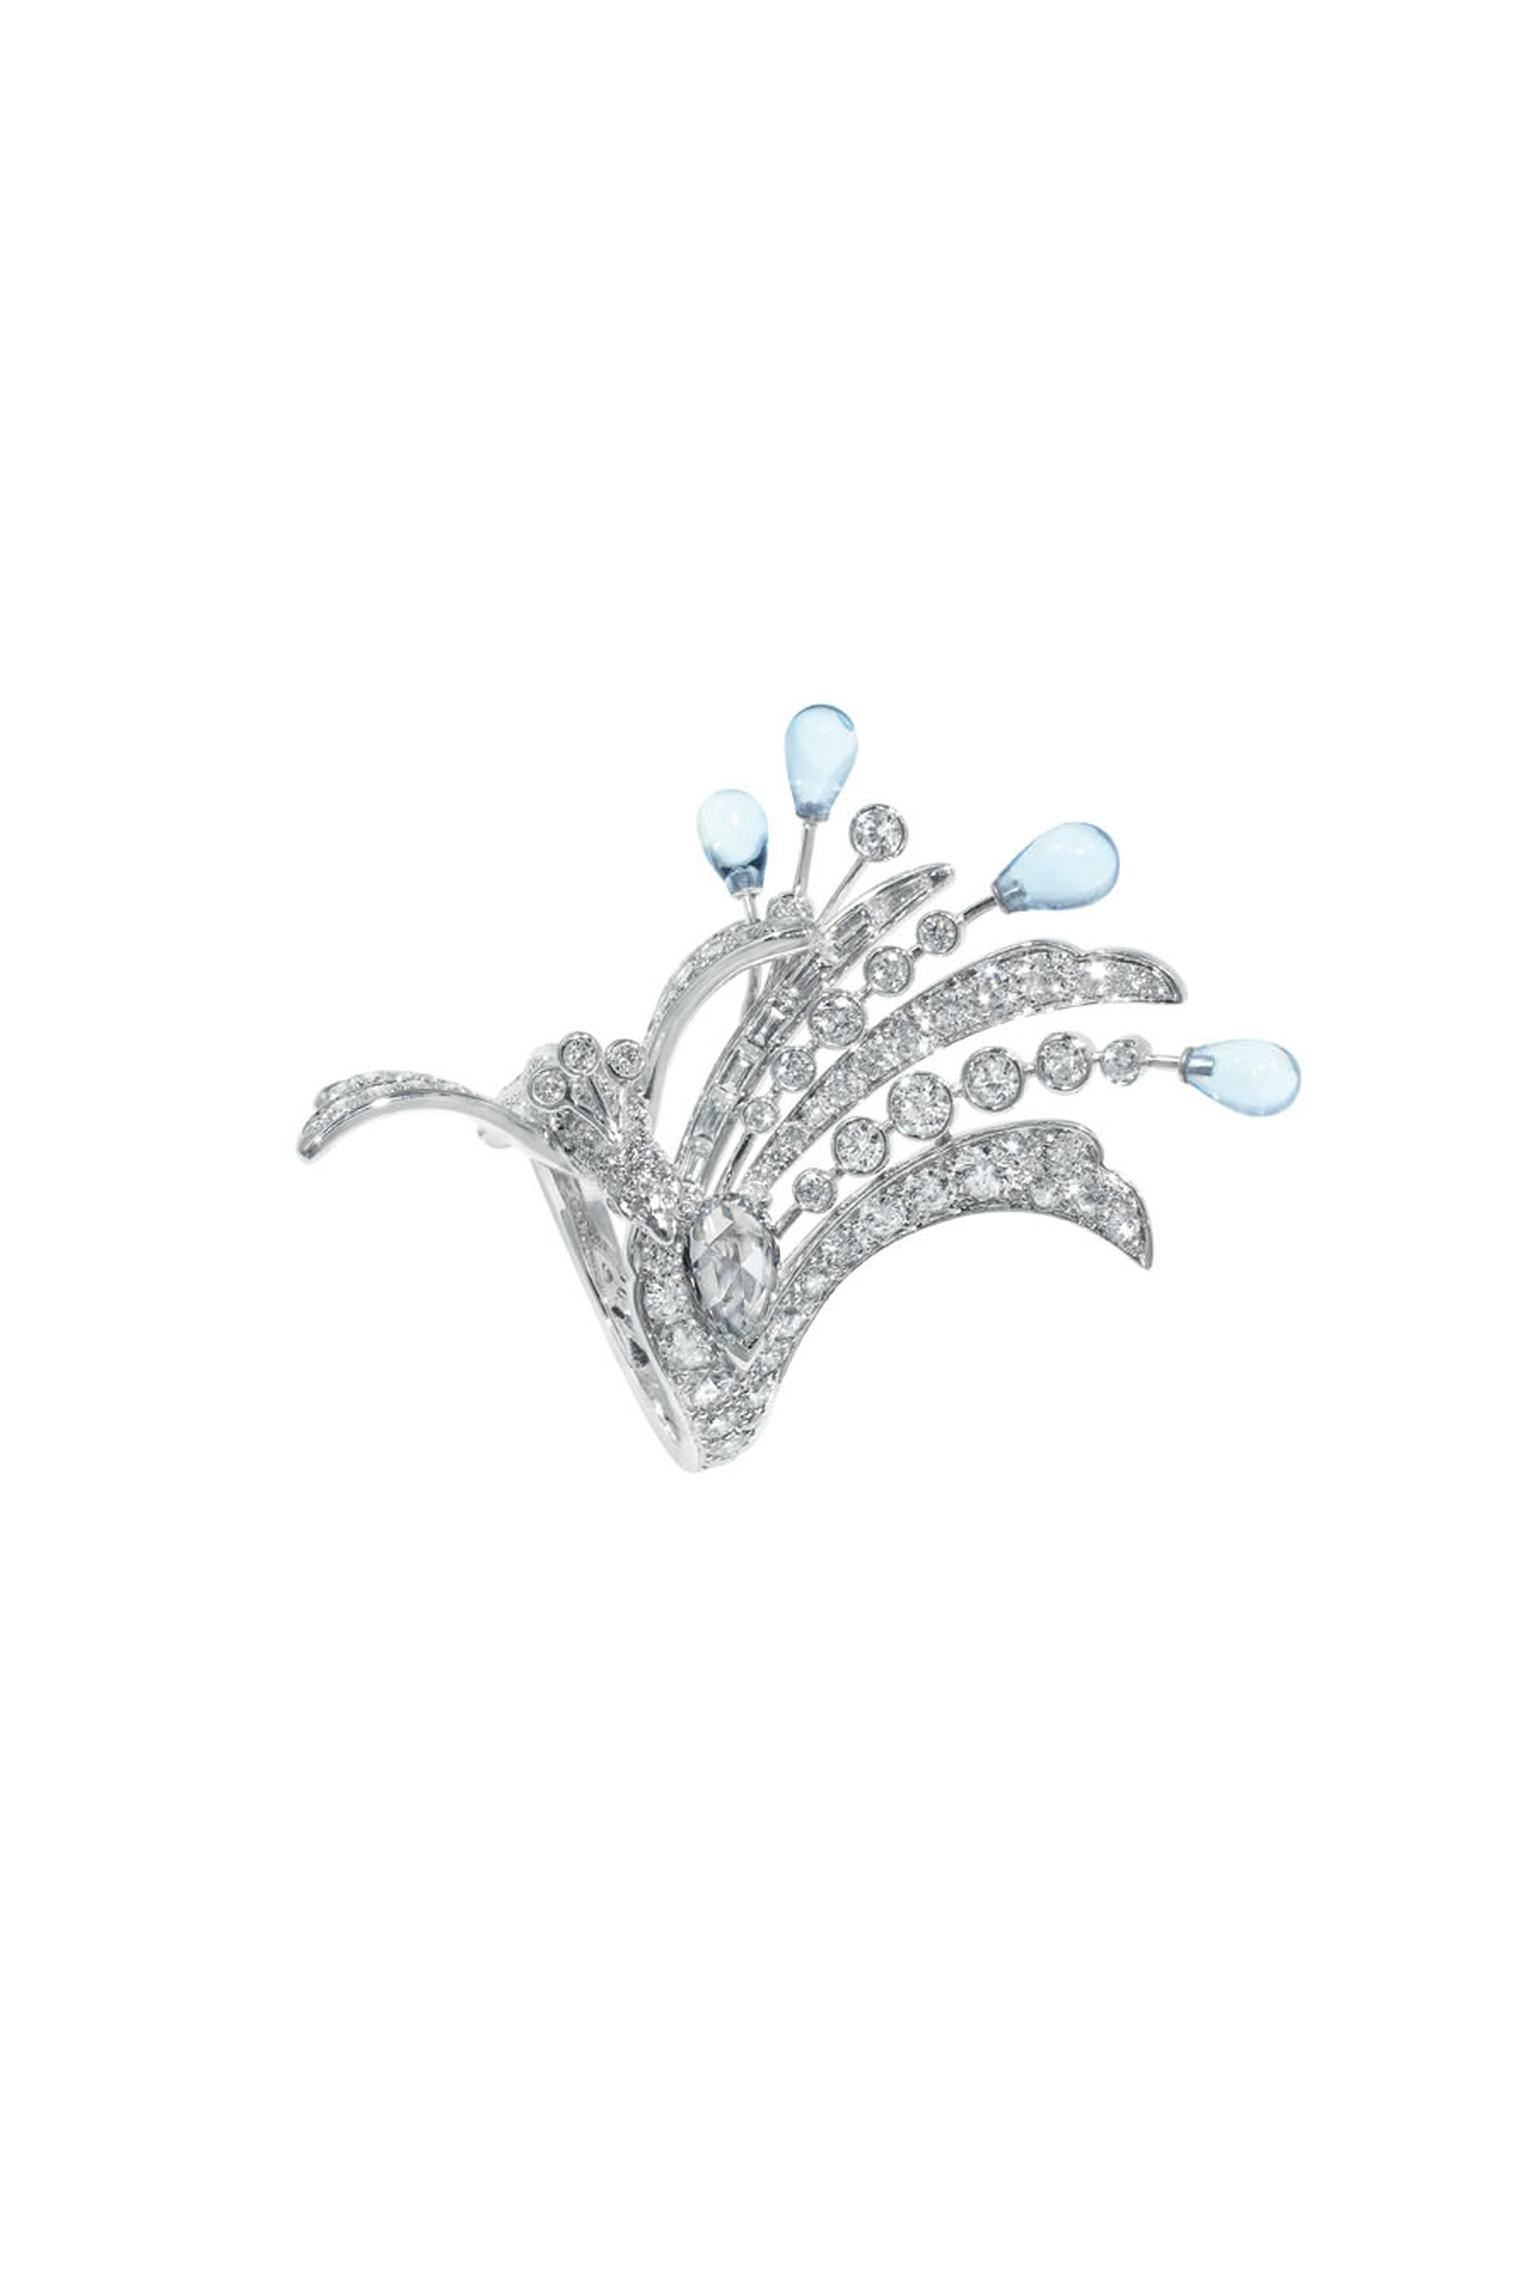 Boucheron Hotel de la Lumière Paon de Lune ring in white gold, set with aquamarine and white diamonds.